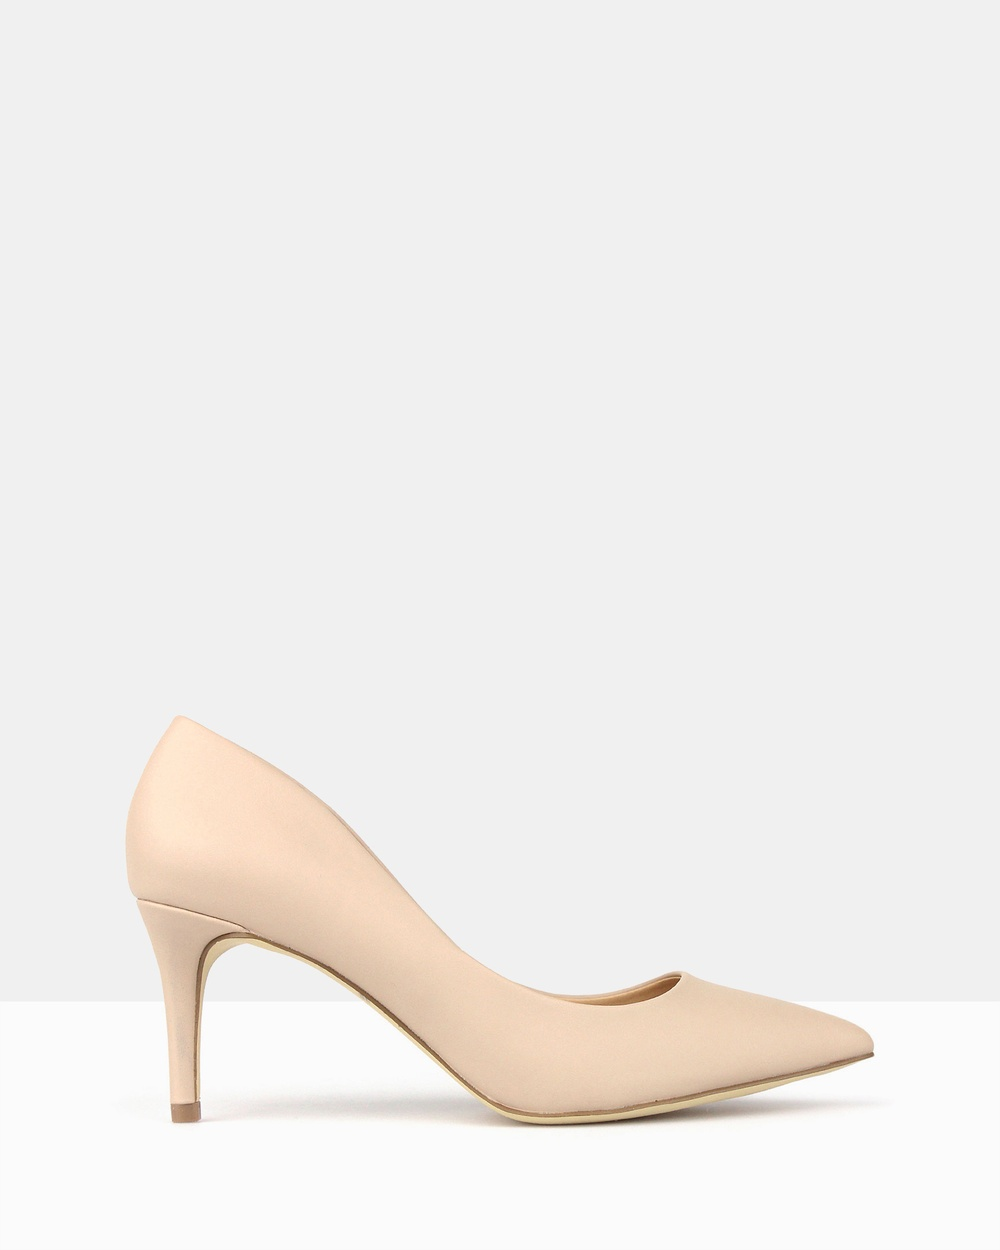 Betts Empower Pointed Toe Stiletto Pump All Pumps Nude Empower Pointed Toe Stiletto Pump